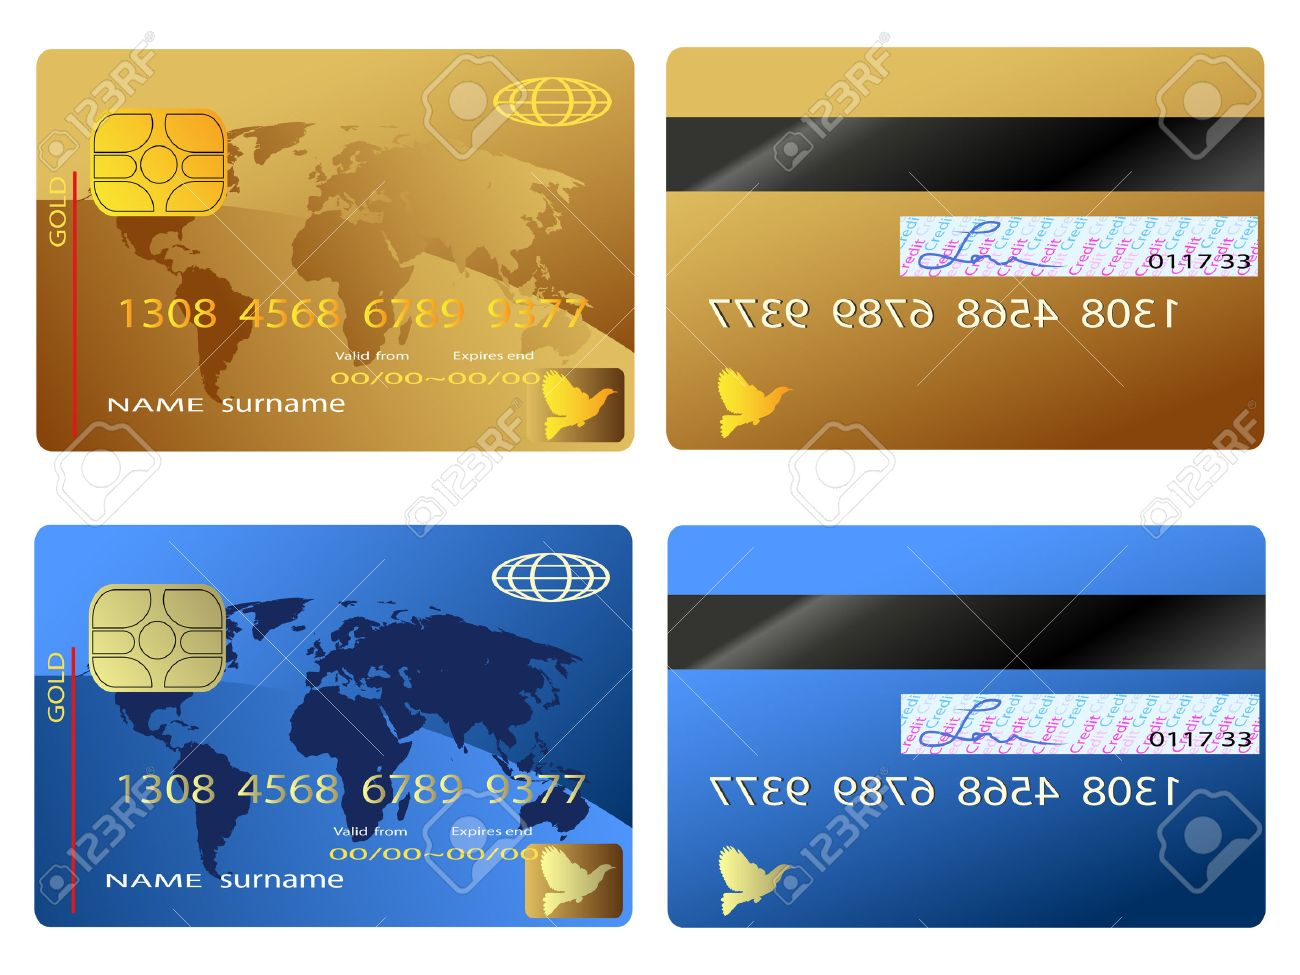 The Back And Front View Of Credit Card Royalty Free Cliparts